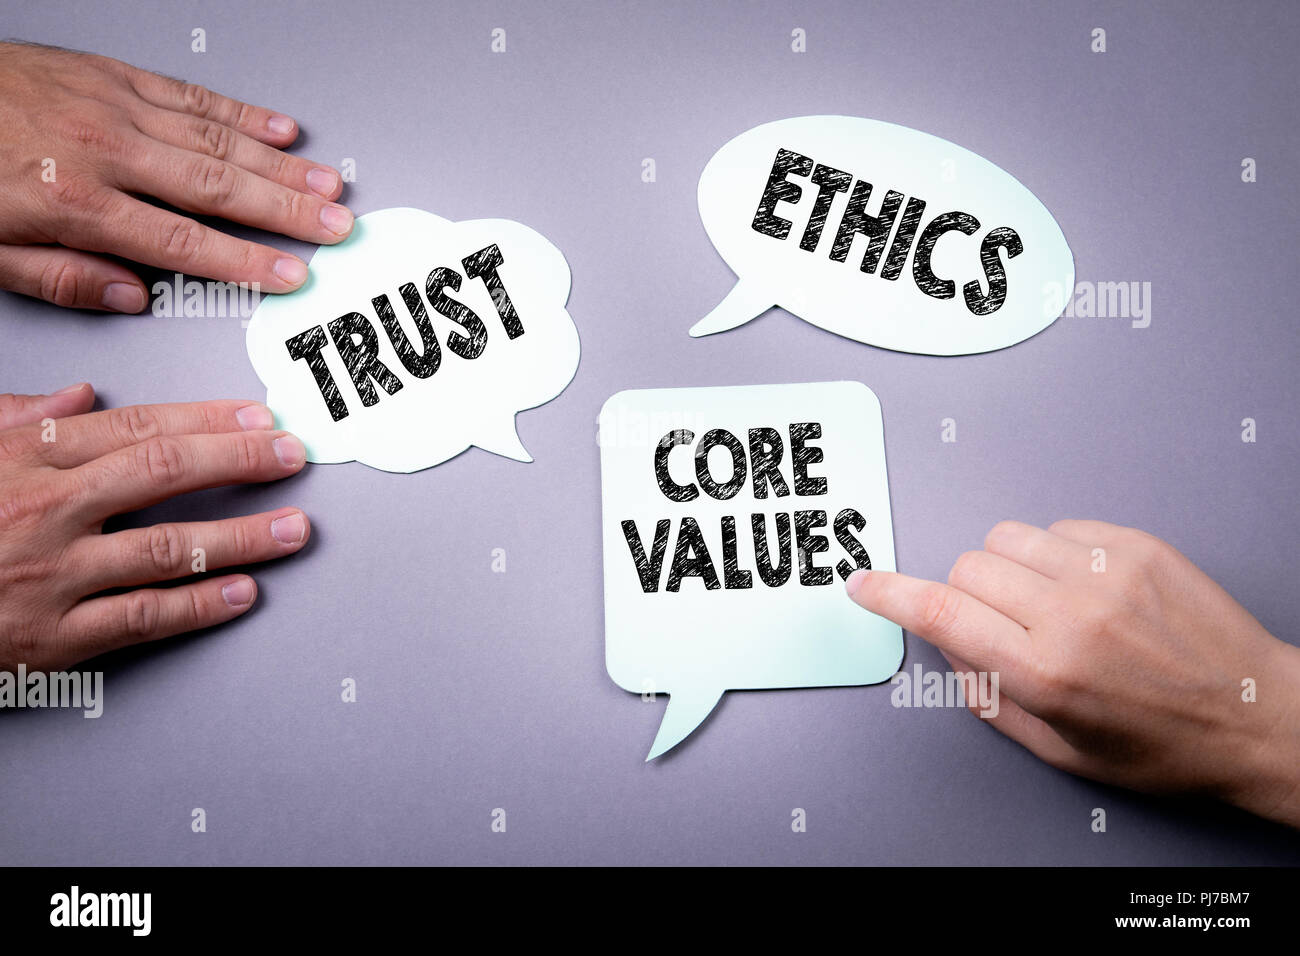 core values, trust and ethics concept - Stock Image